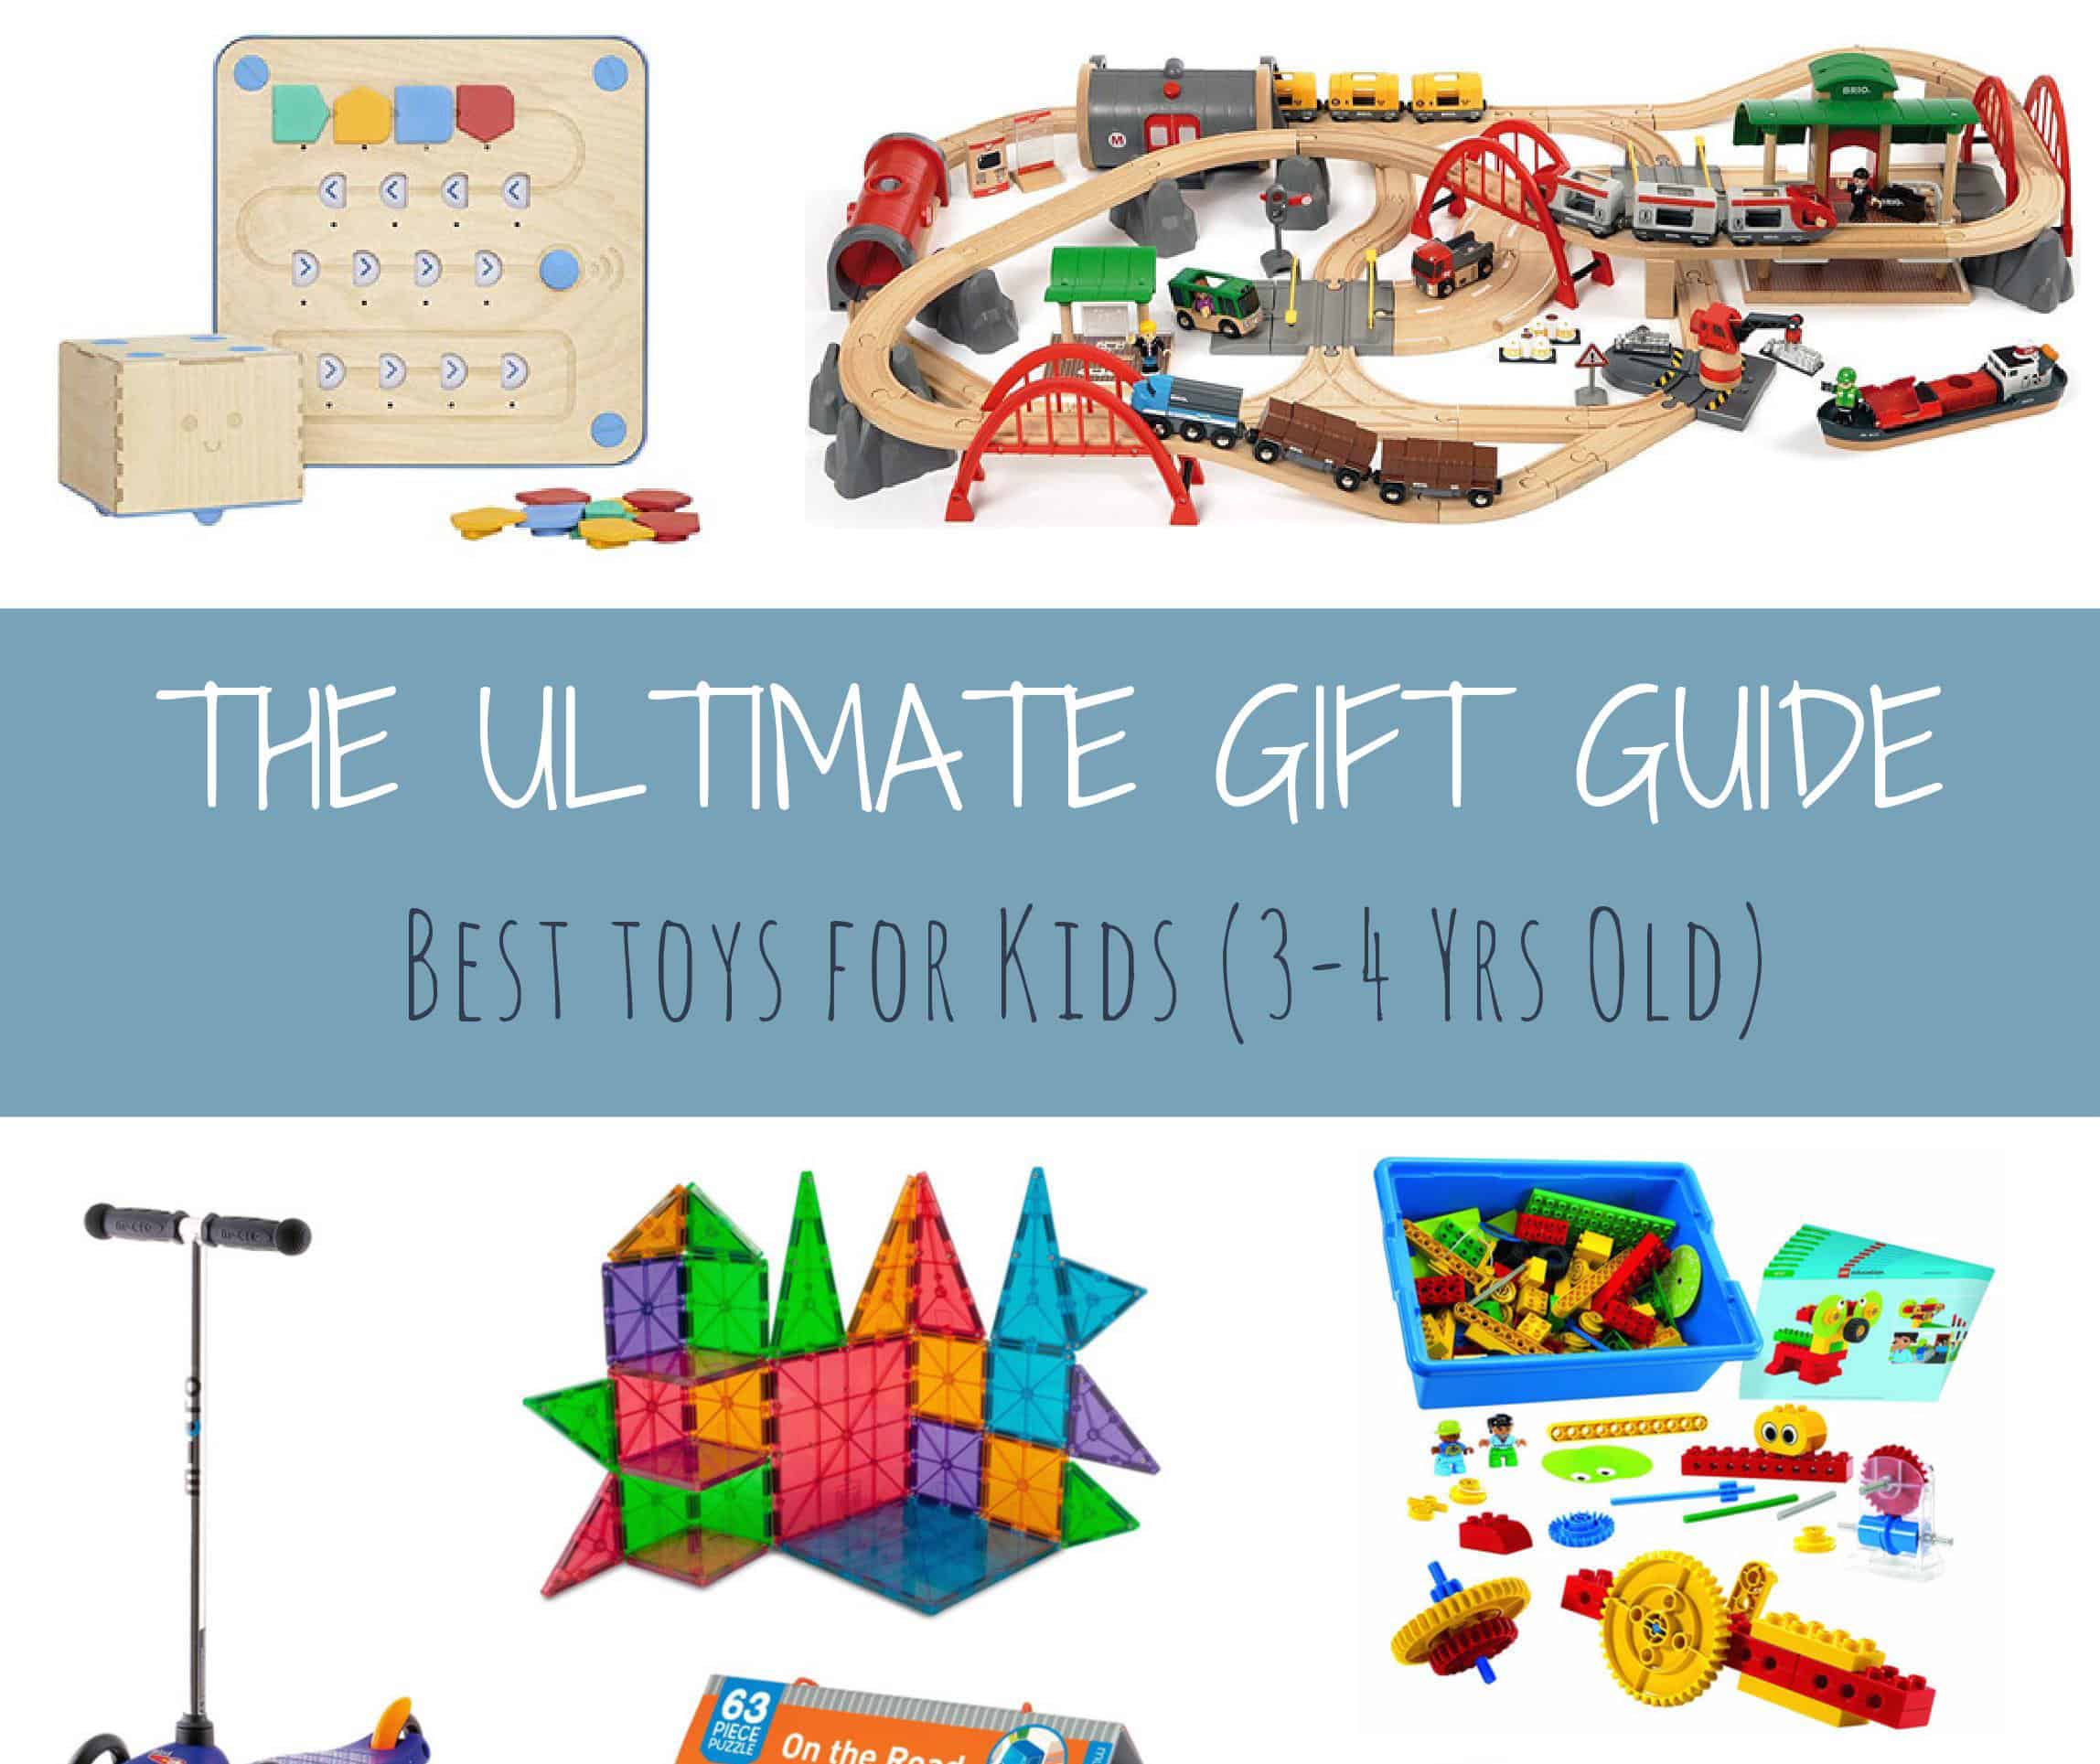 2bcc6f0fa7ec The Ultimate Gift Guide  Best Toys for Kids (3-4 Years Old)